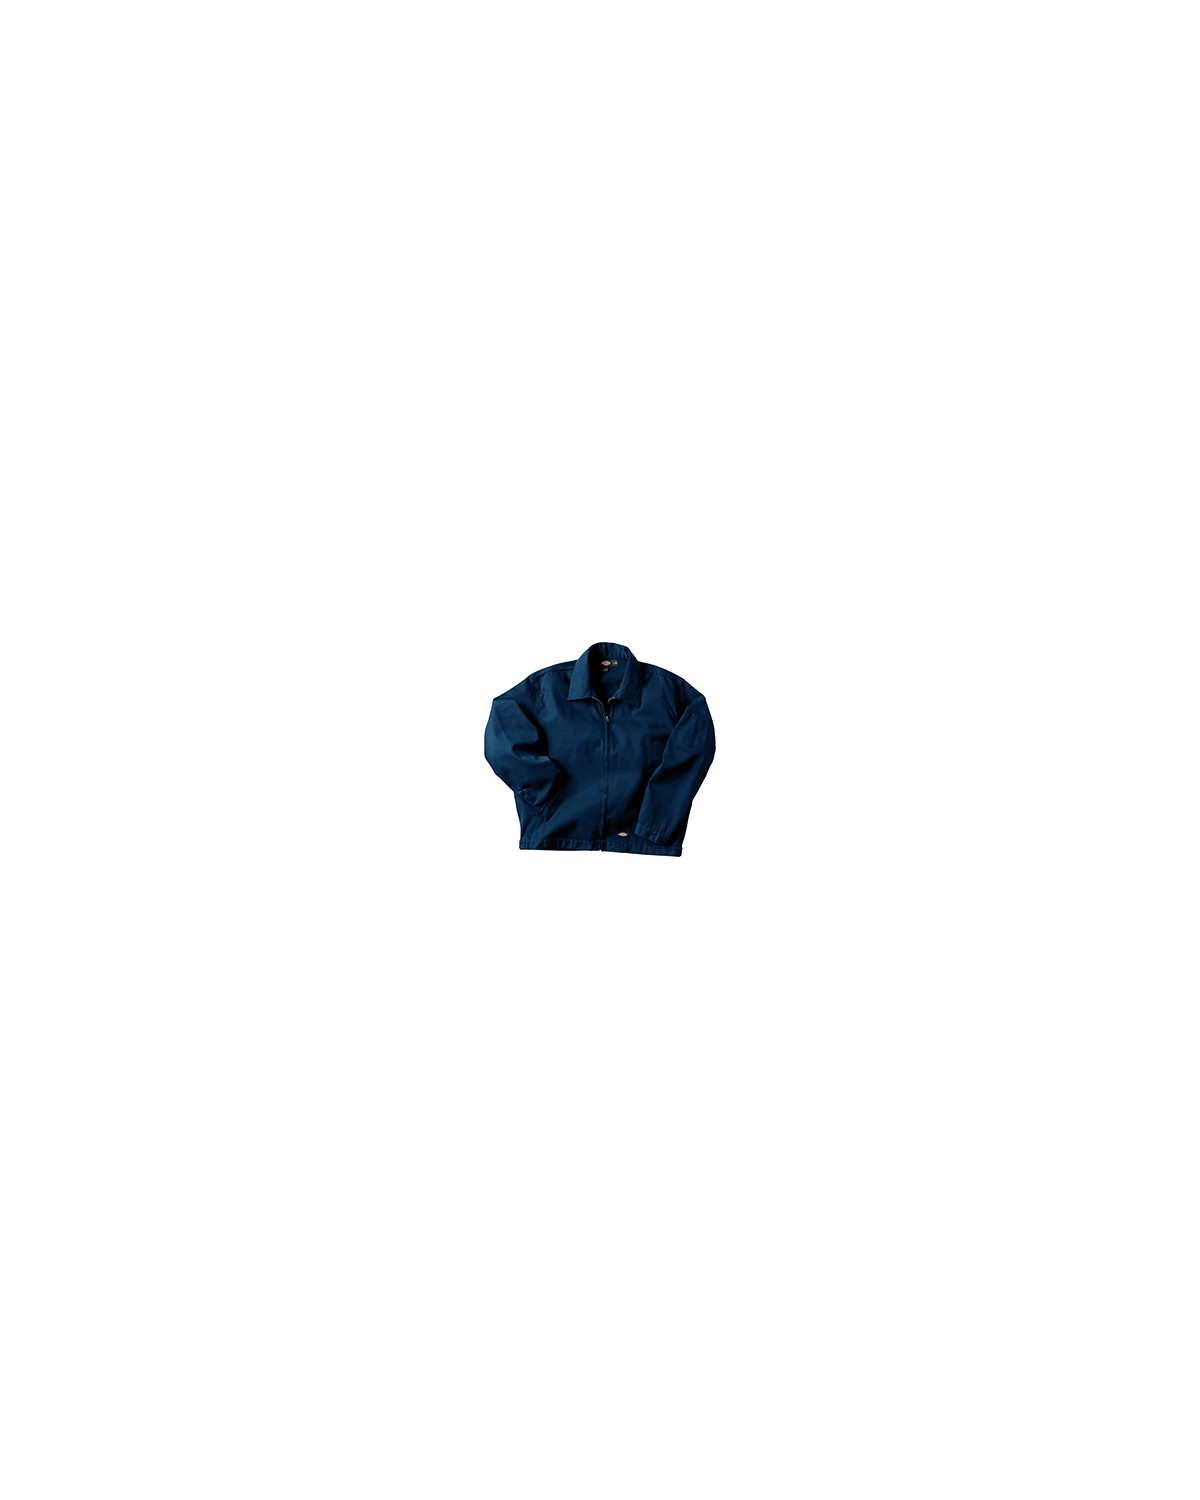 JT75 Dickies Drop Ship DARK NAVY